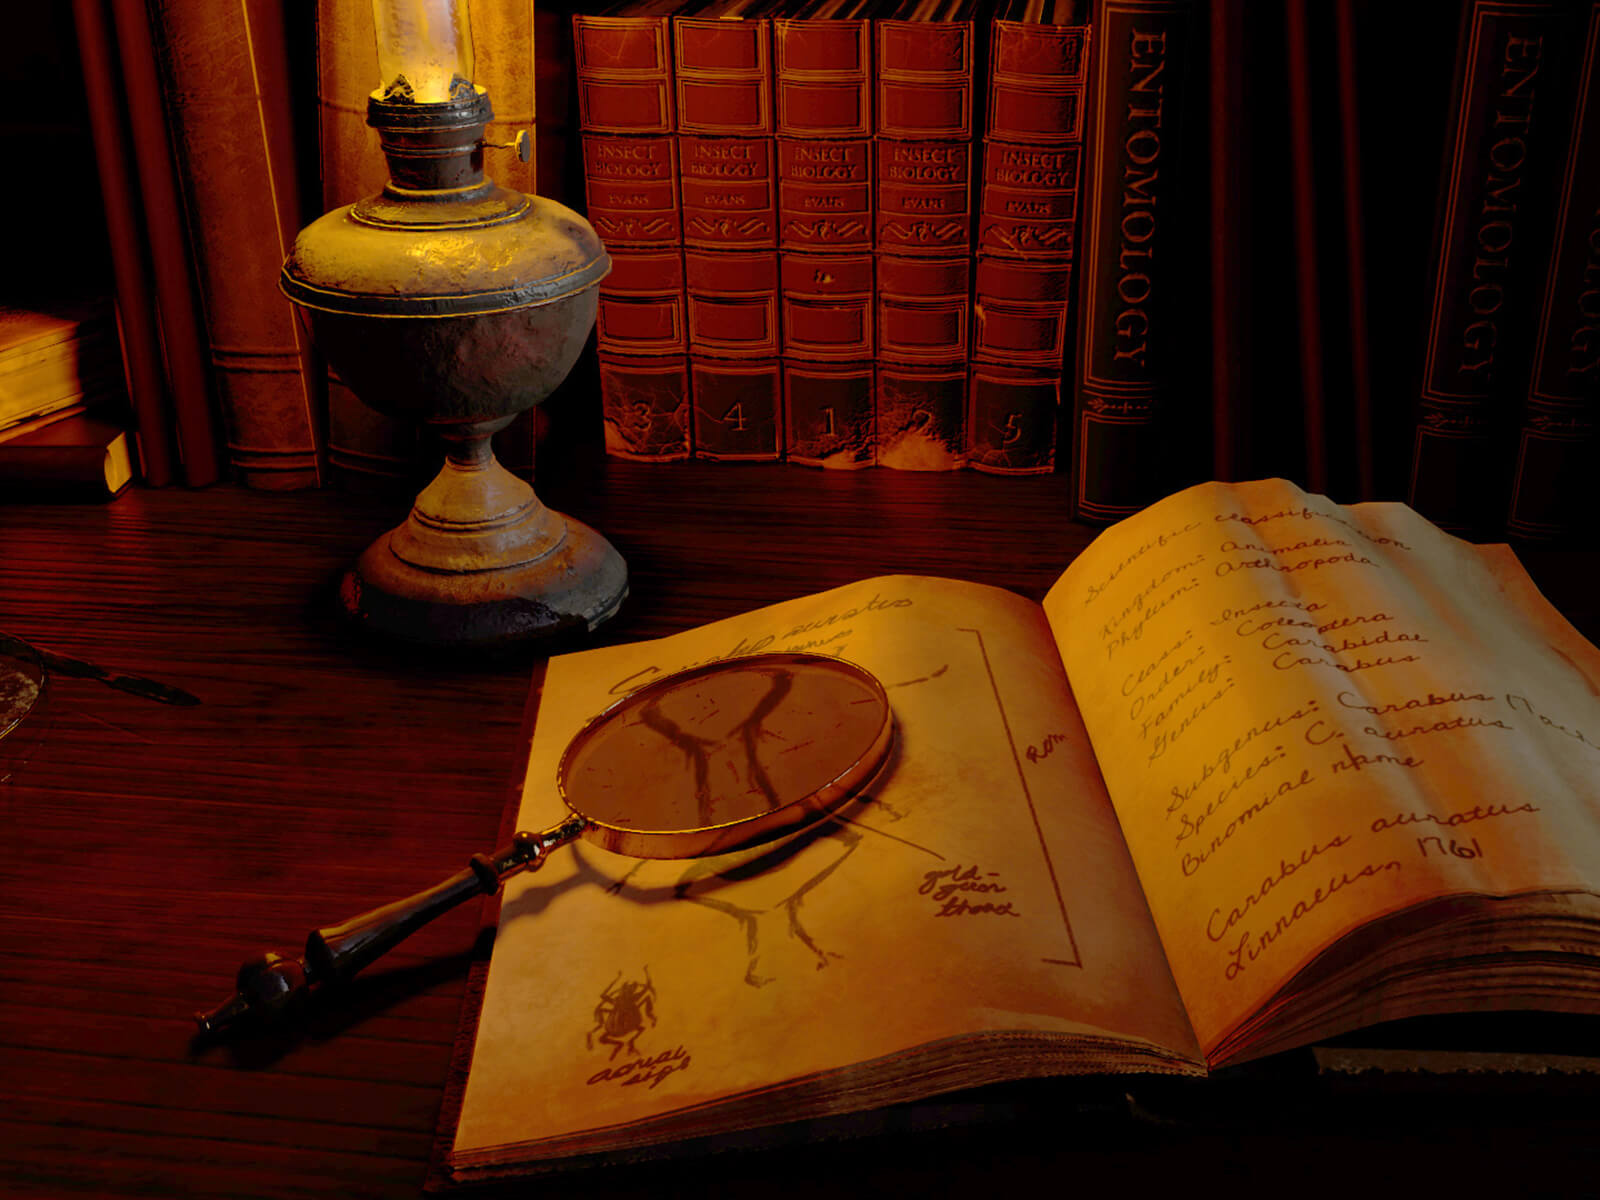 A book with a magnifying glass lying on top of it, lit by a lantern